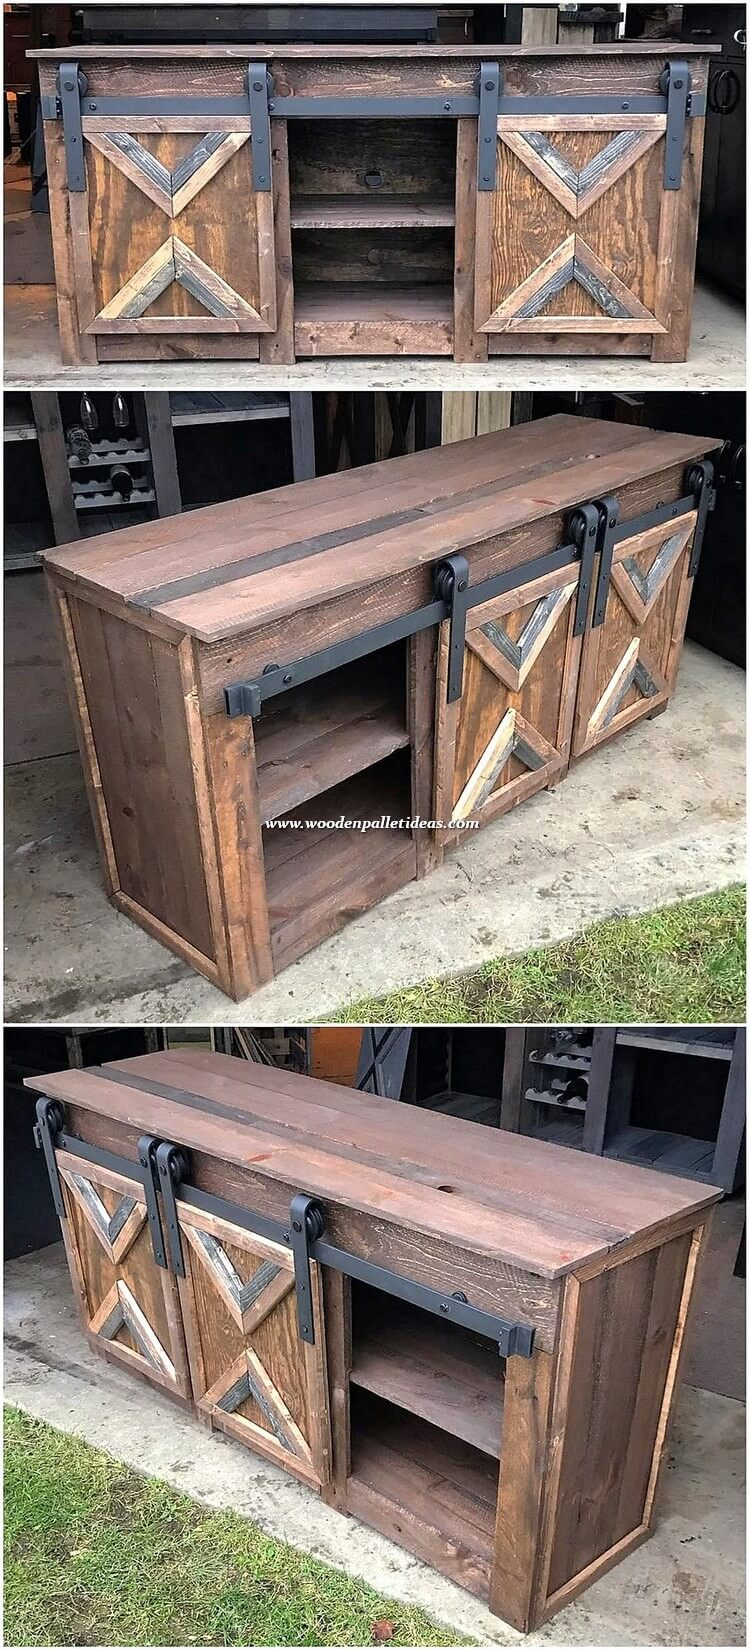 Wooden Pallet Cabinet with Sliding Doors